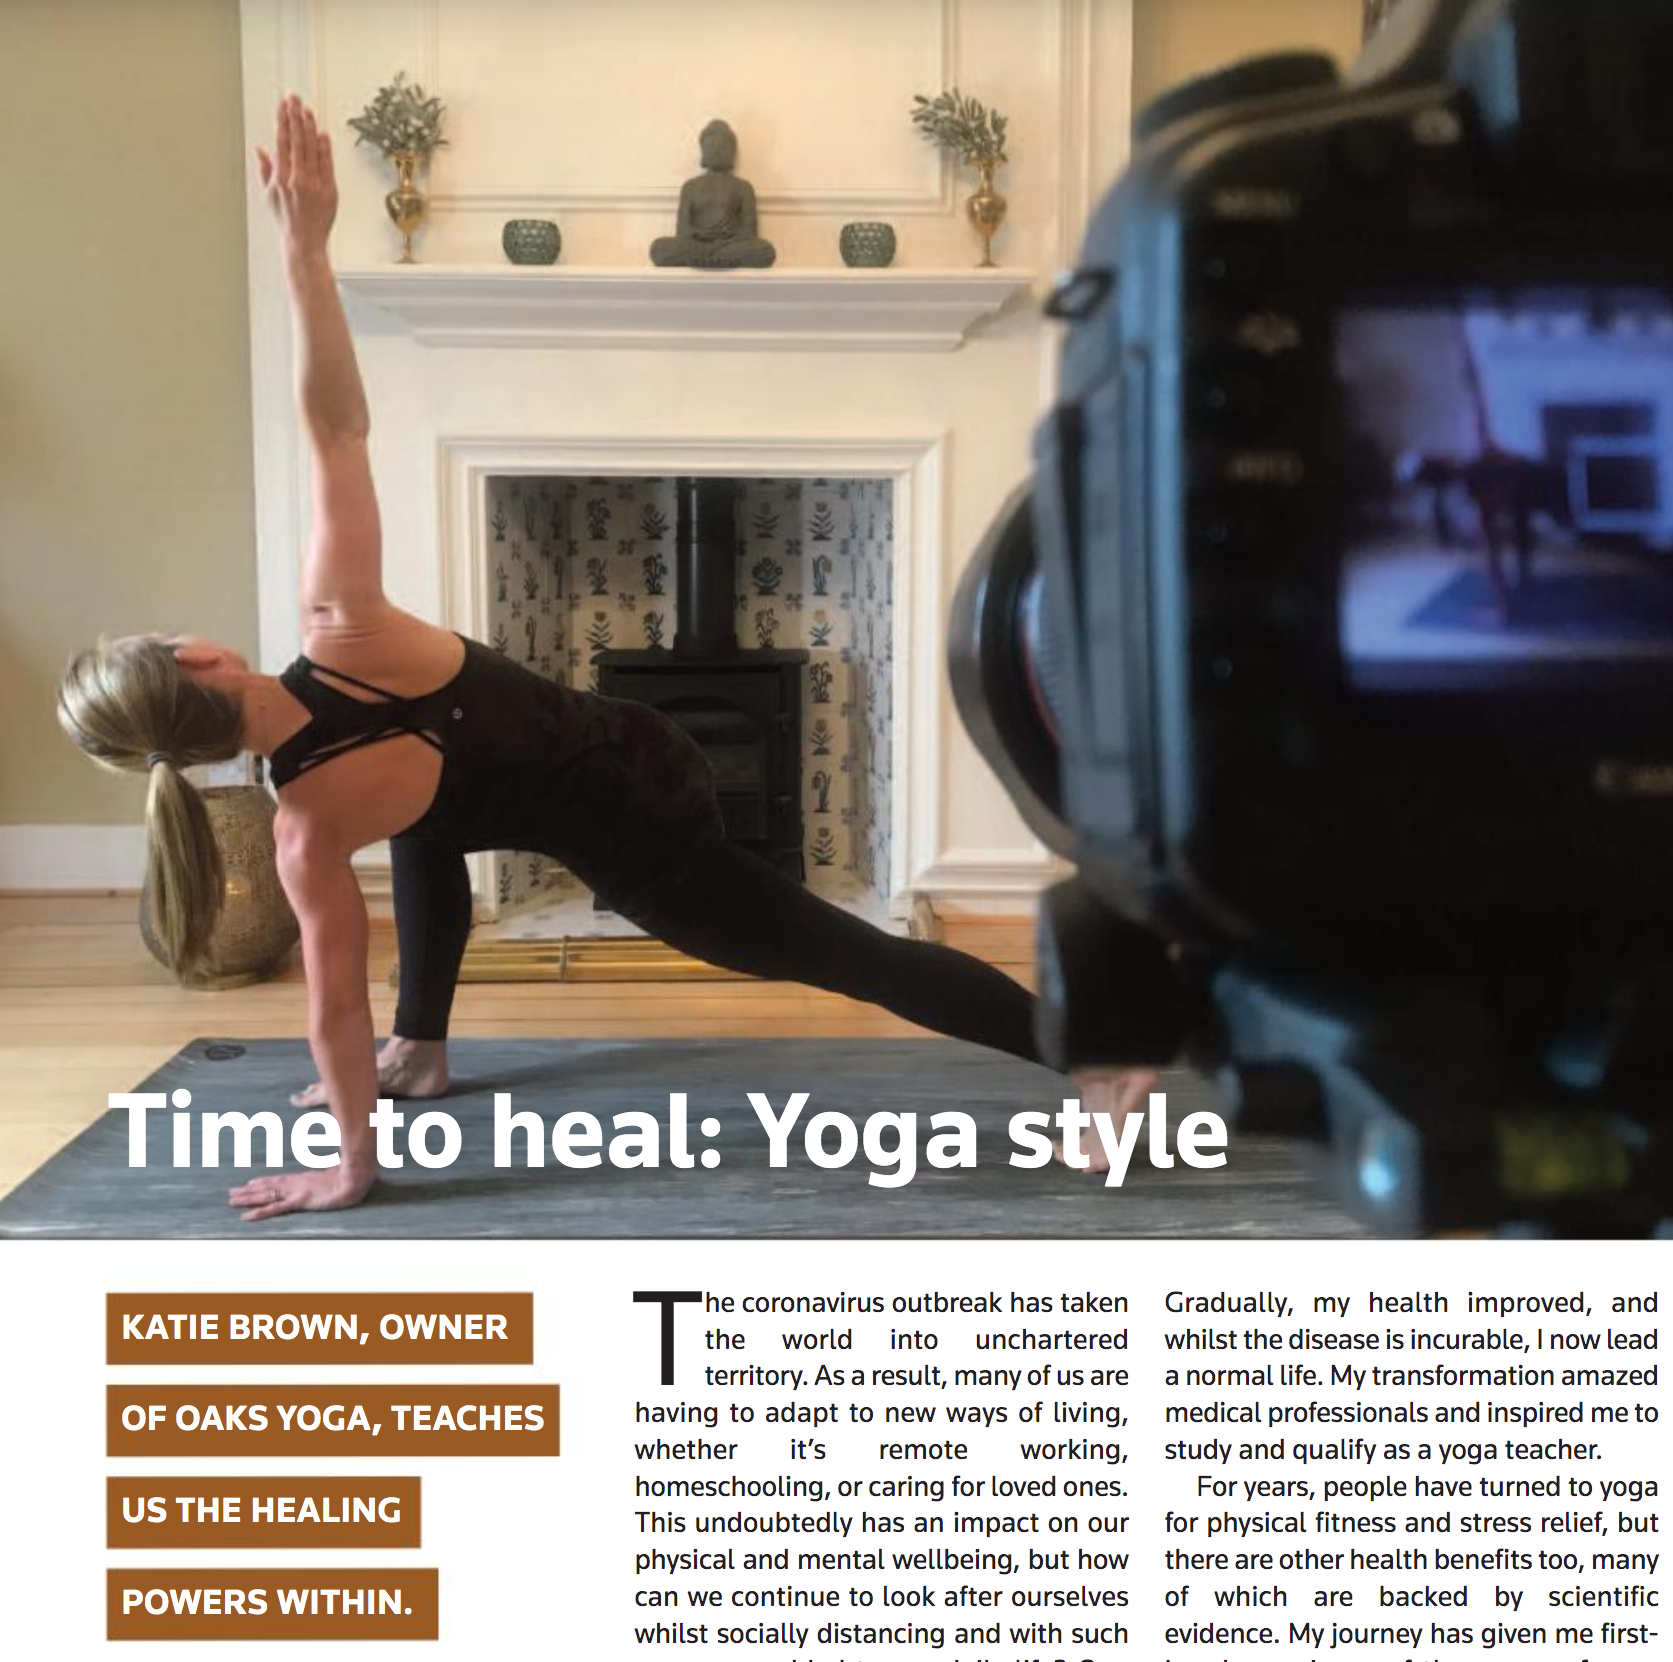 Time to heal: Yoga style - An article for Sevenoaks Health and Wellbeing Magazine